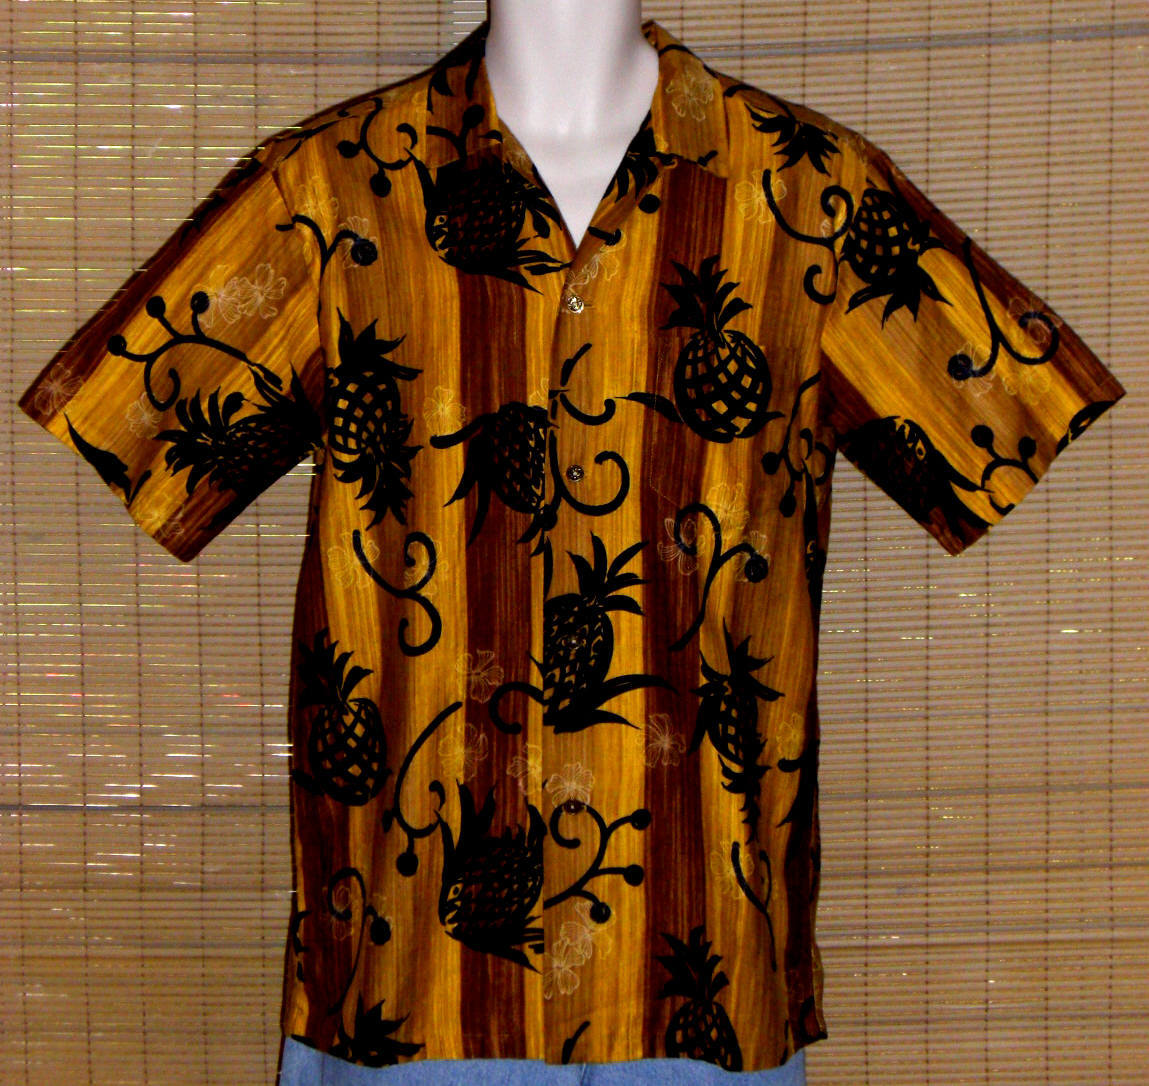 Reyn's Menswear Hawaiian Shirt Vintage 1950 Brown Gold Black Small